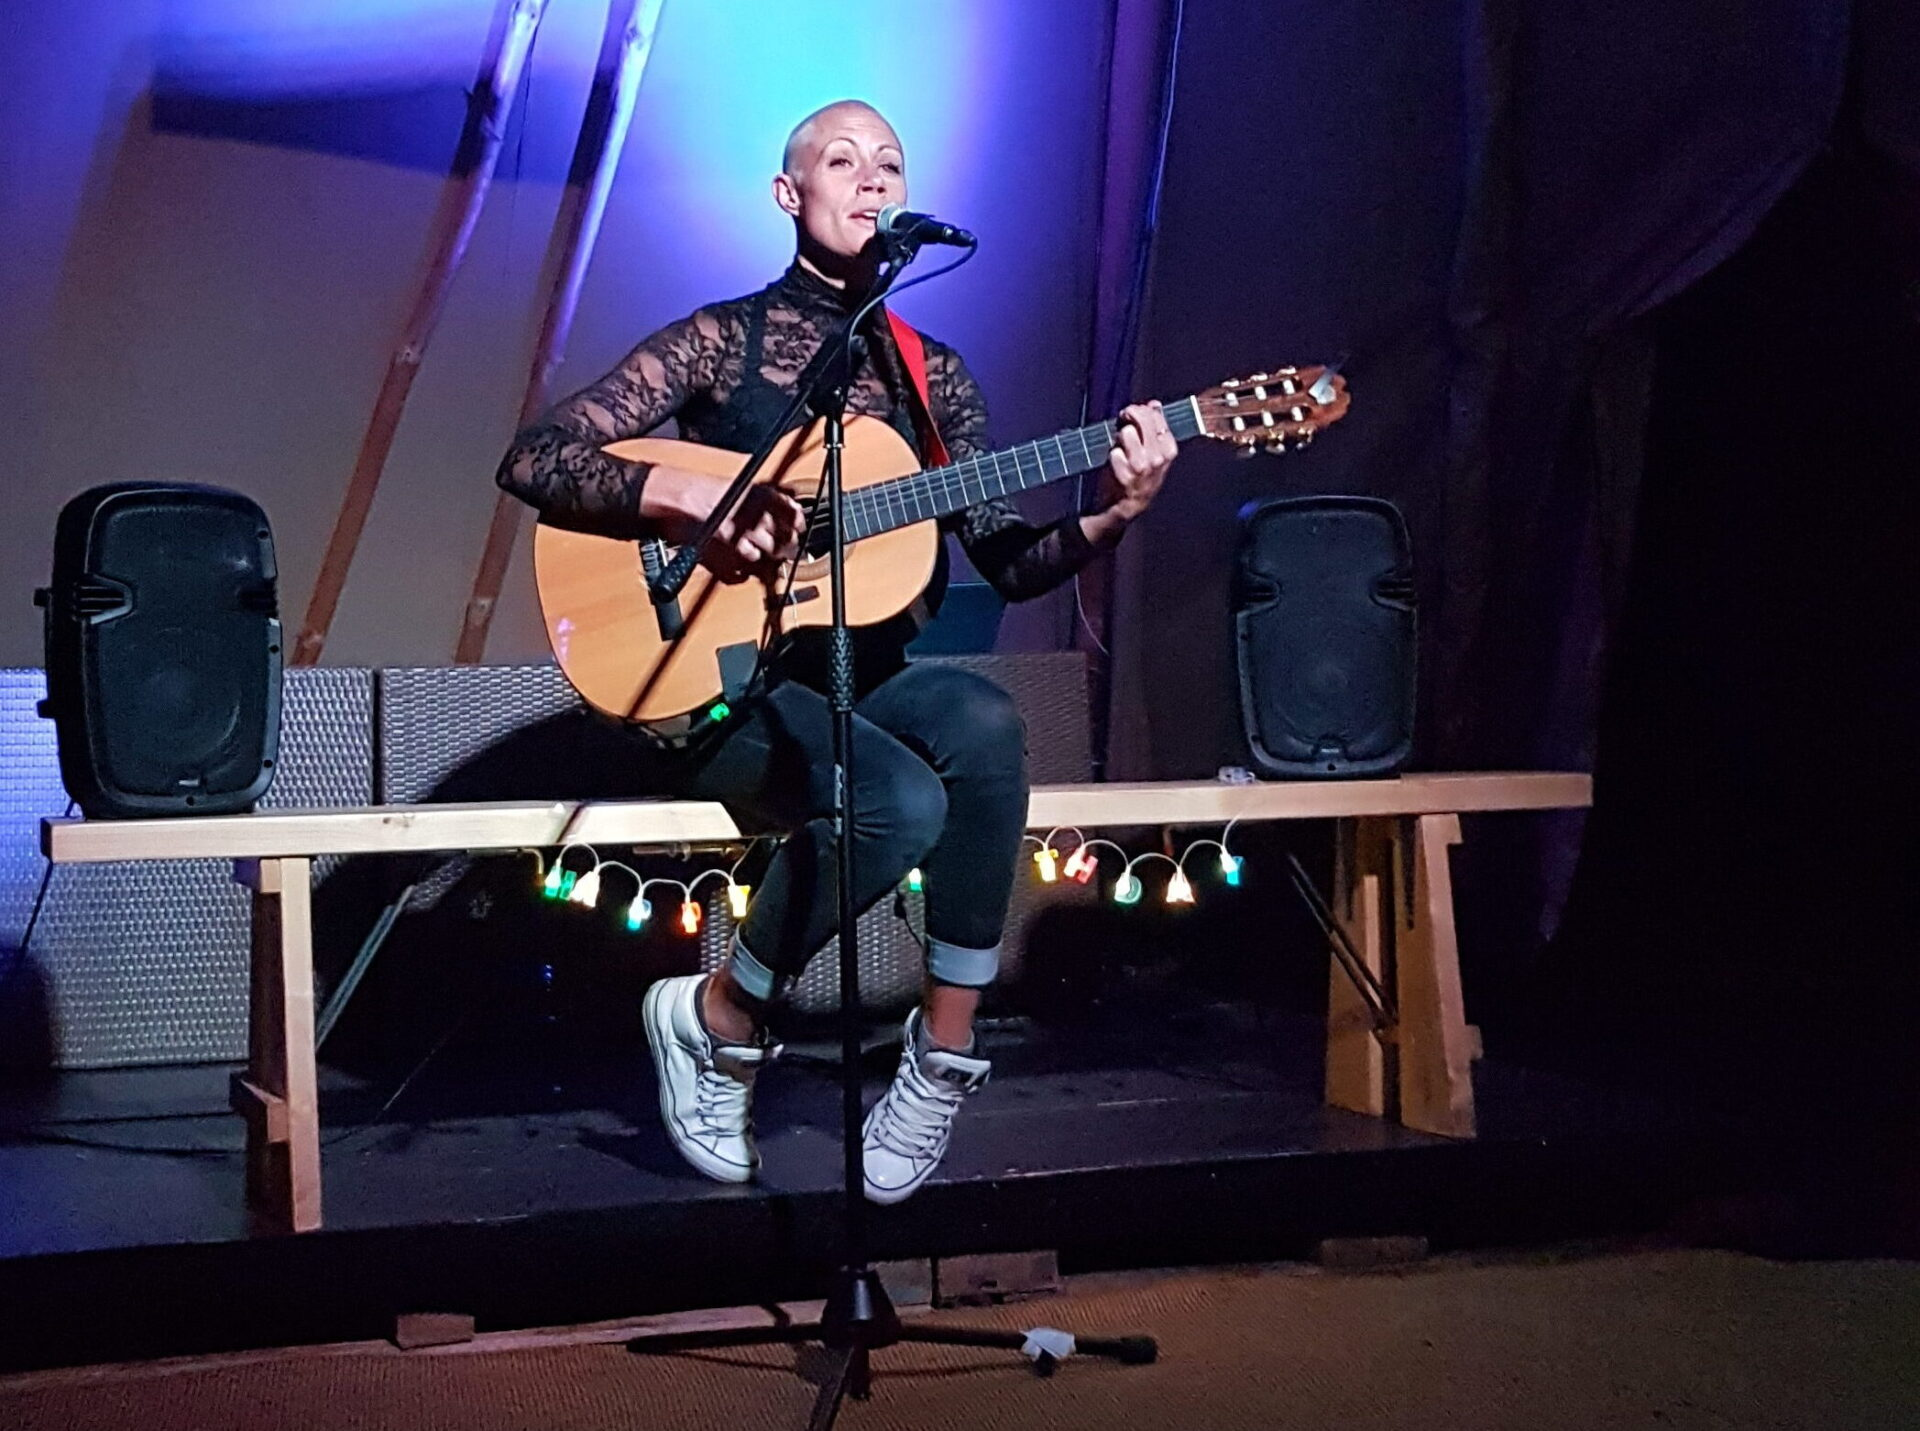 Wrenne performing in the Tipis at the Edinburgh Festivals